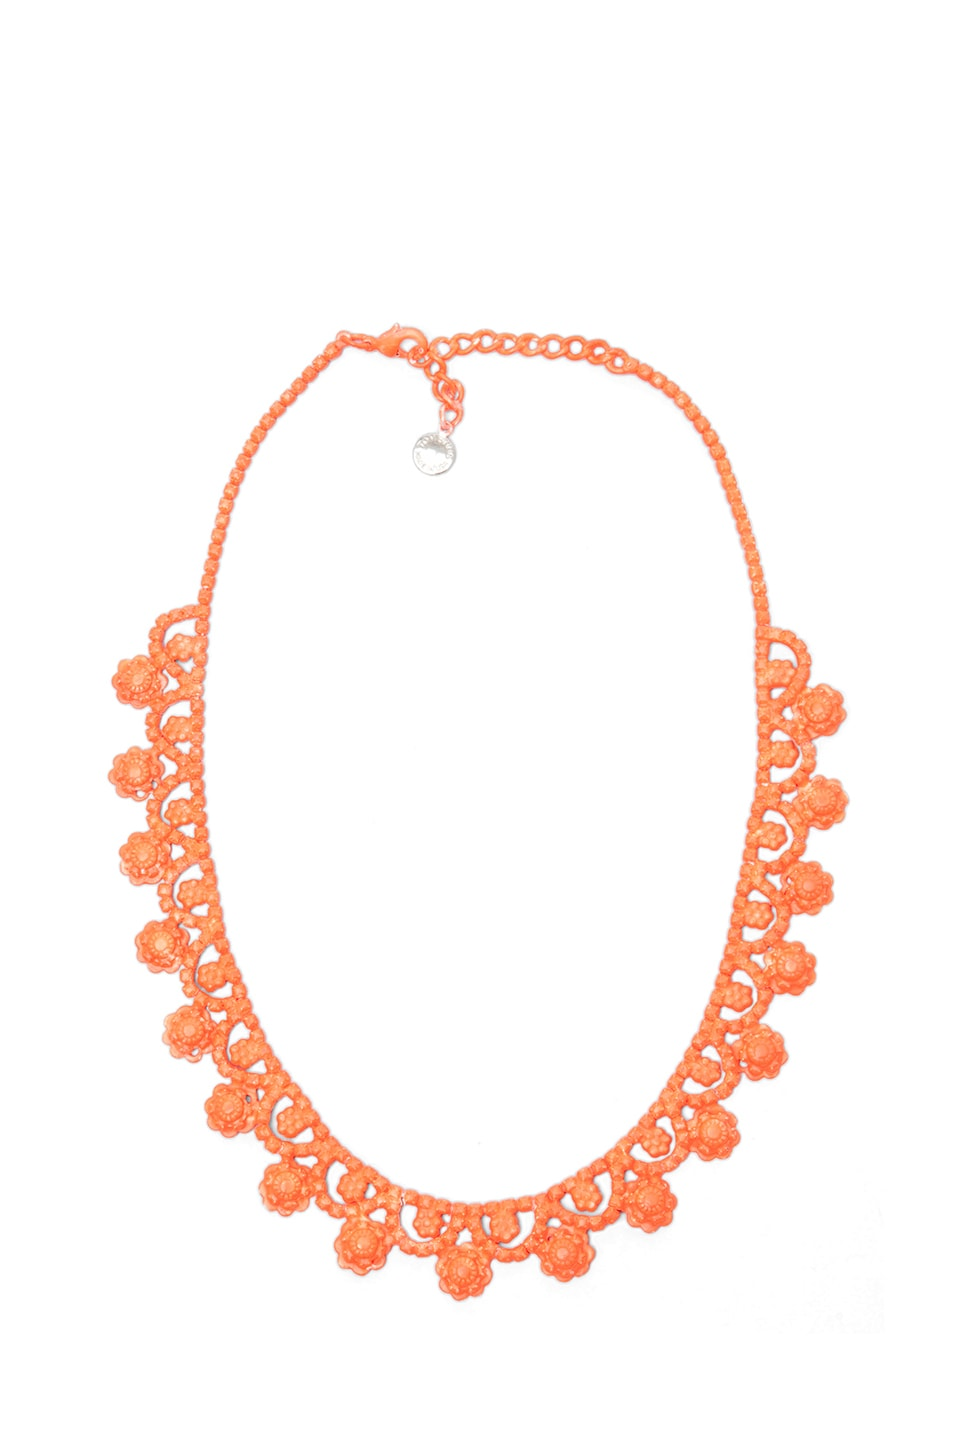 Image 1 of Tom Binns Neo Neon Hand Painted Rhodium Necklace in Orange